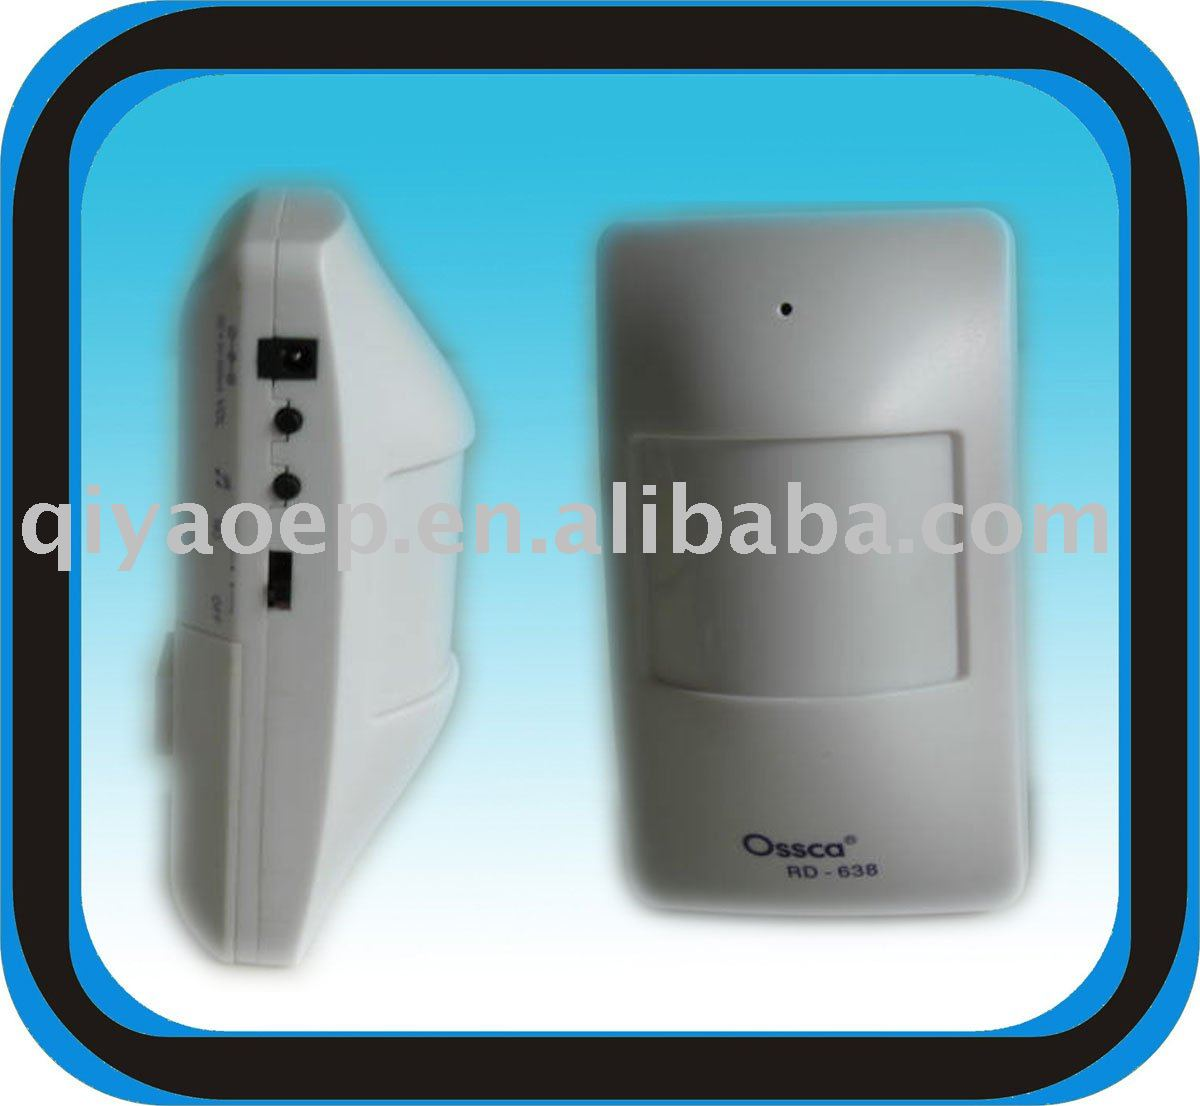 Door Bell For Hotel Wholesale, Door Bell Suppliers - Alibaba